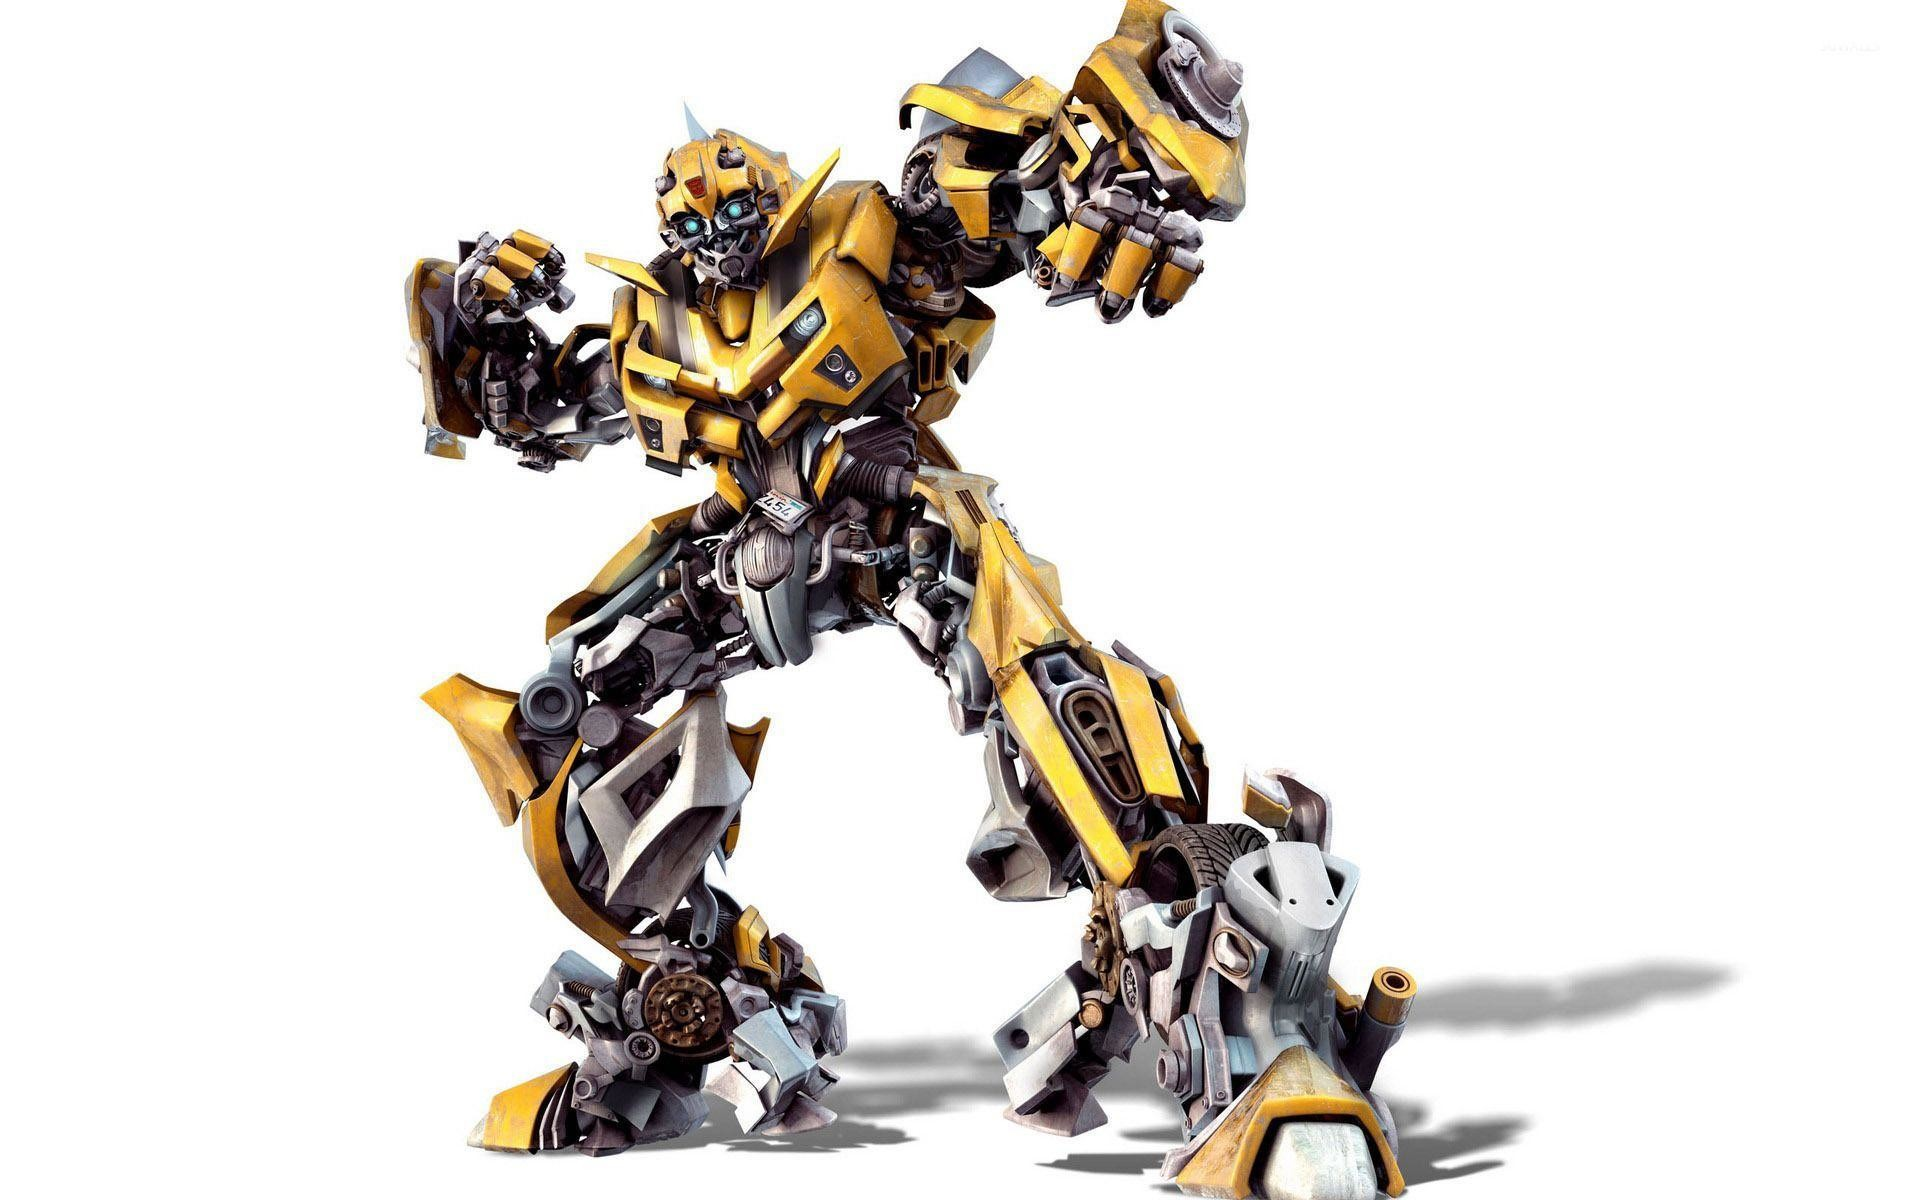 Res: 1920x1200, Bumblebee - Transformers [5] wallpaper - Movie wallpapers - #34365